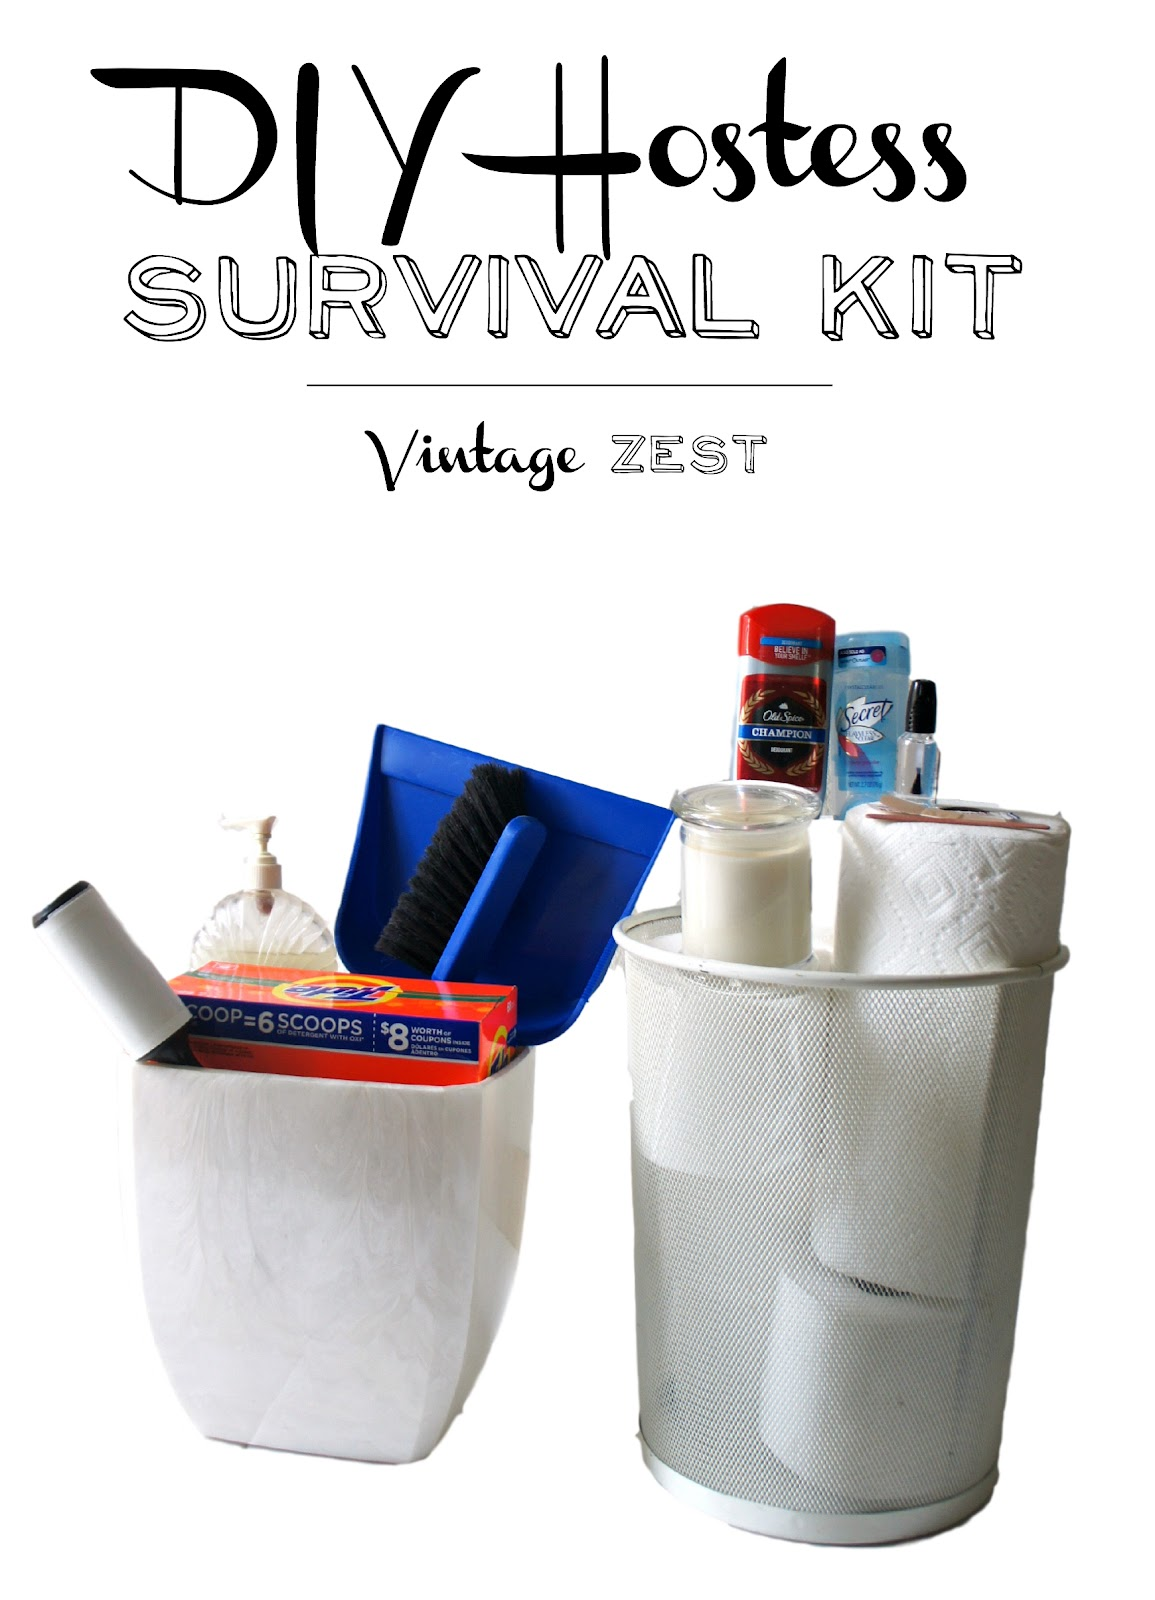 Hostess Survival Kit for Party Disasters on Diane's Vintage Zest! #ad #AwardWithSavings #tutorial